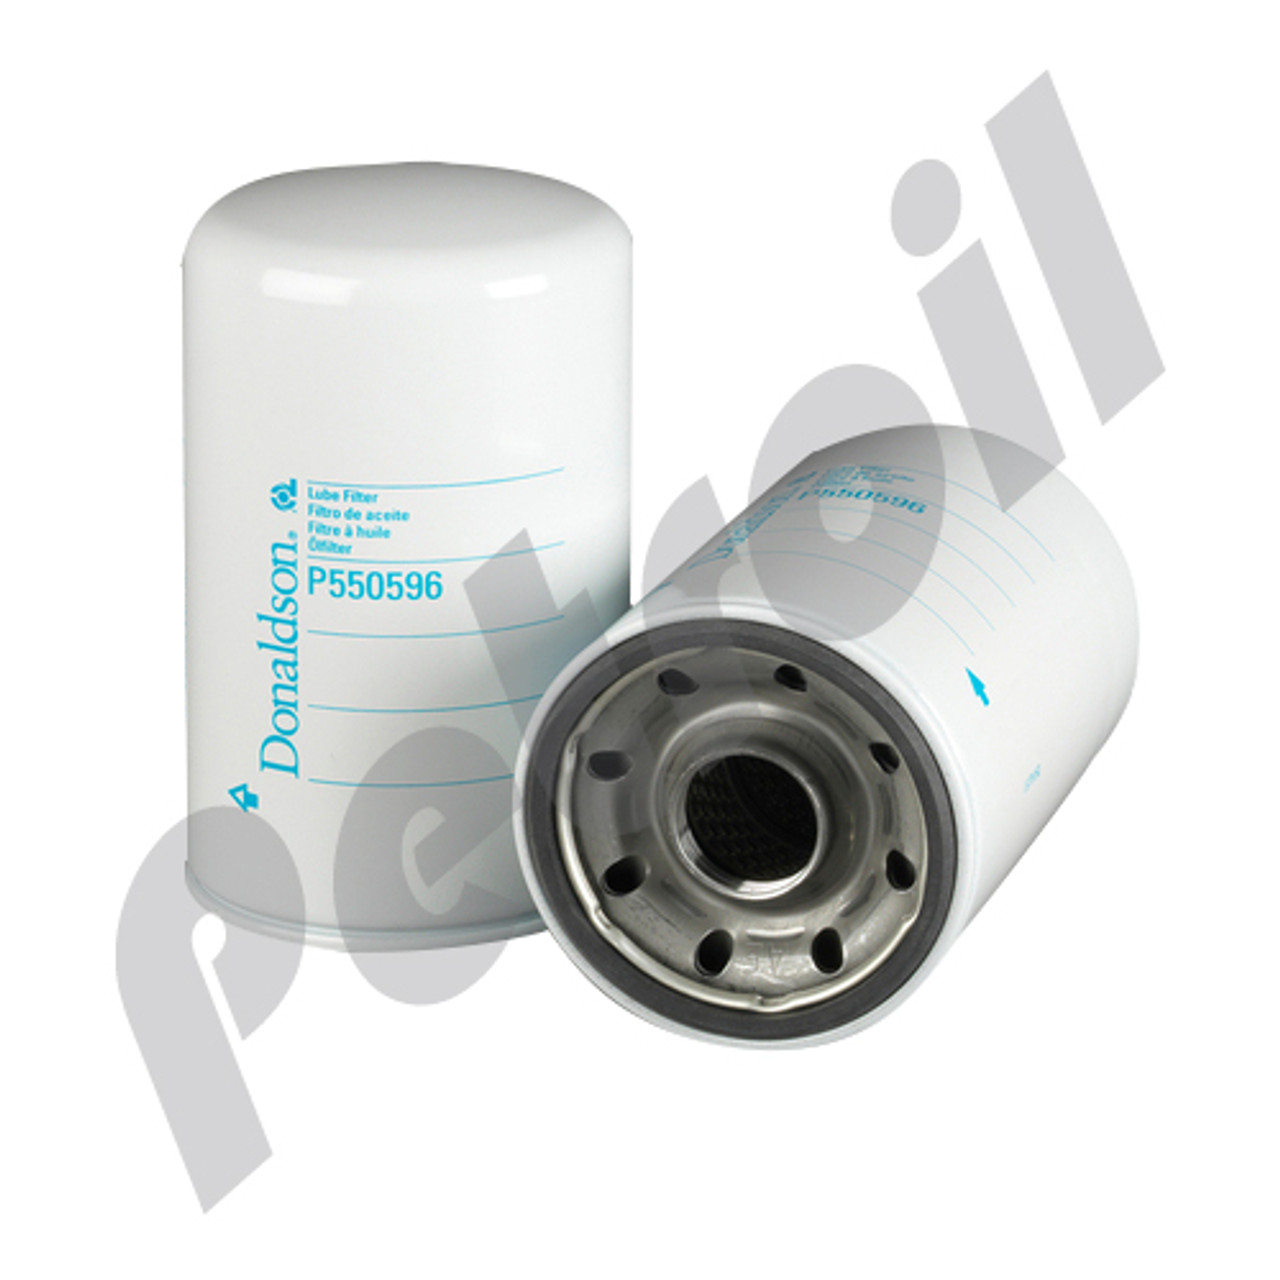 Killer Filter Replacement for DONALDSON P566214